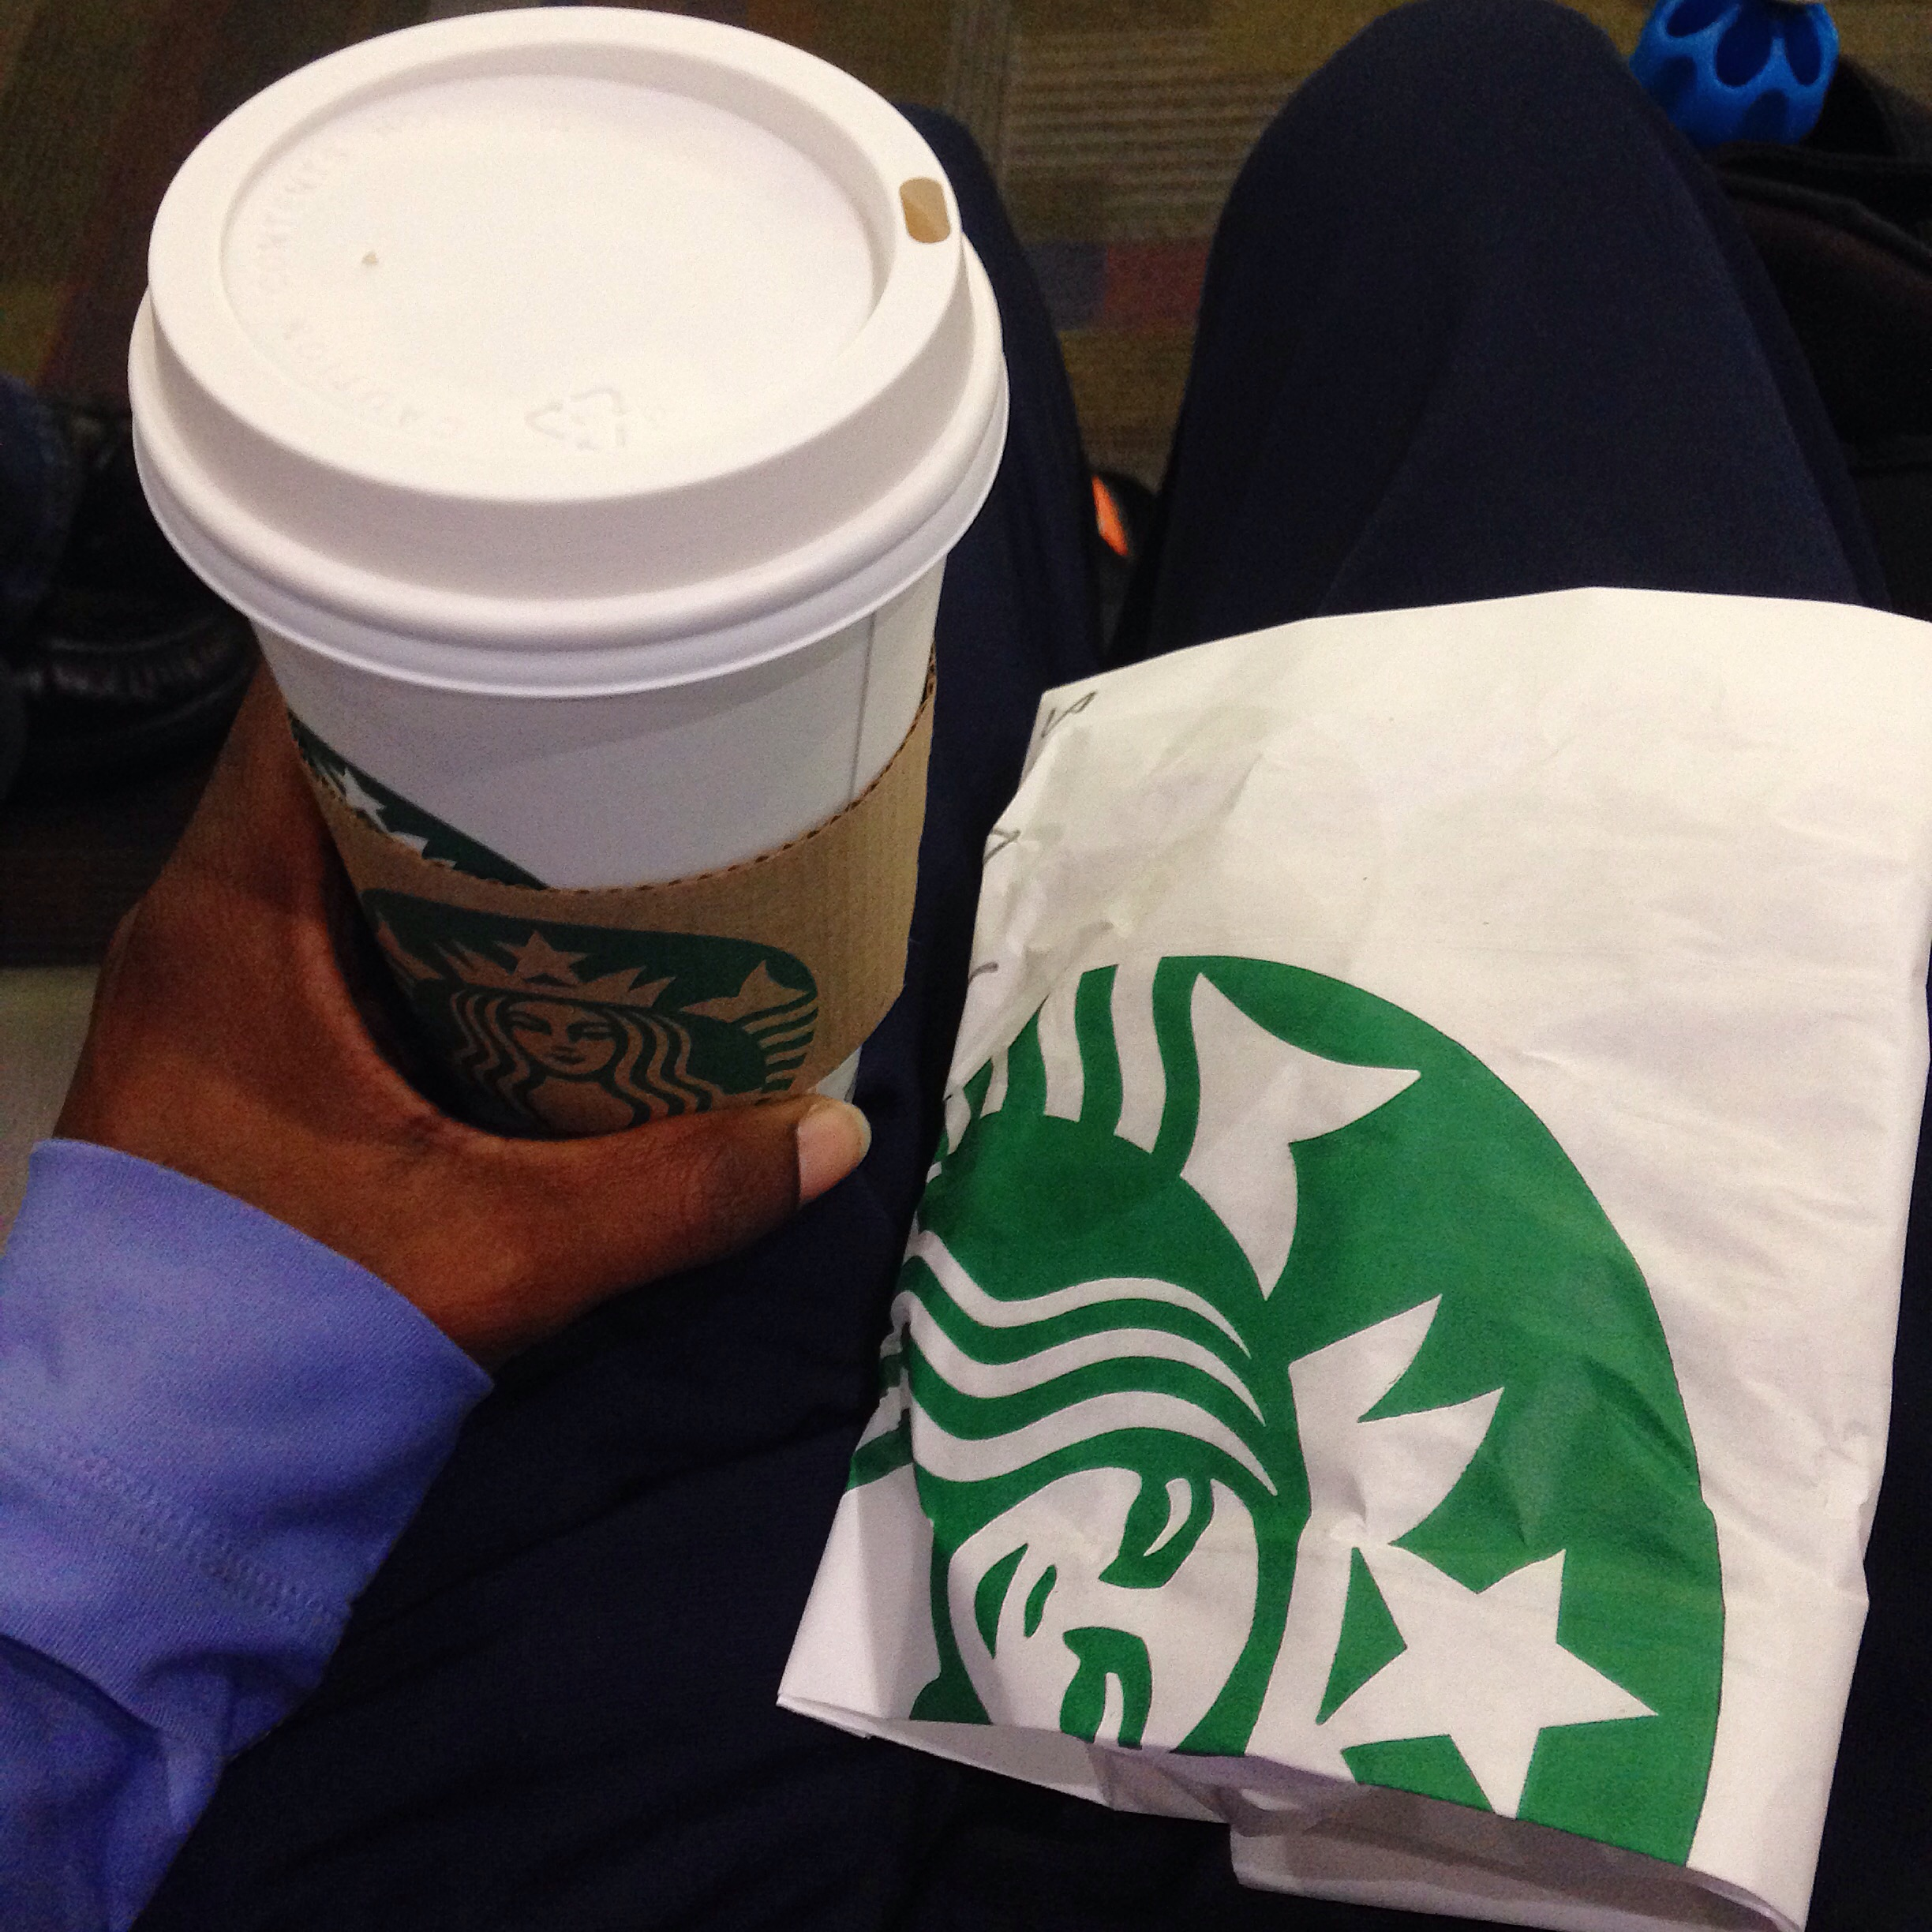 Finally get to enjoy Starbucks again! It has been way to long.